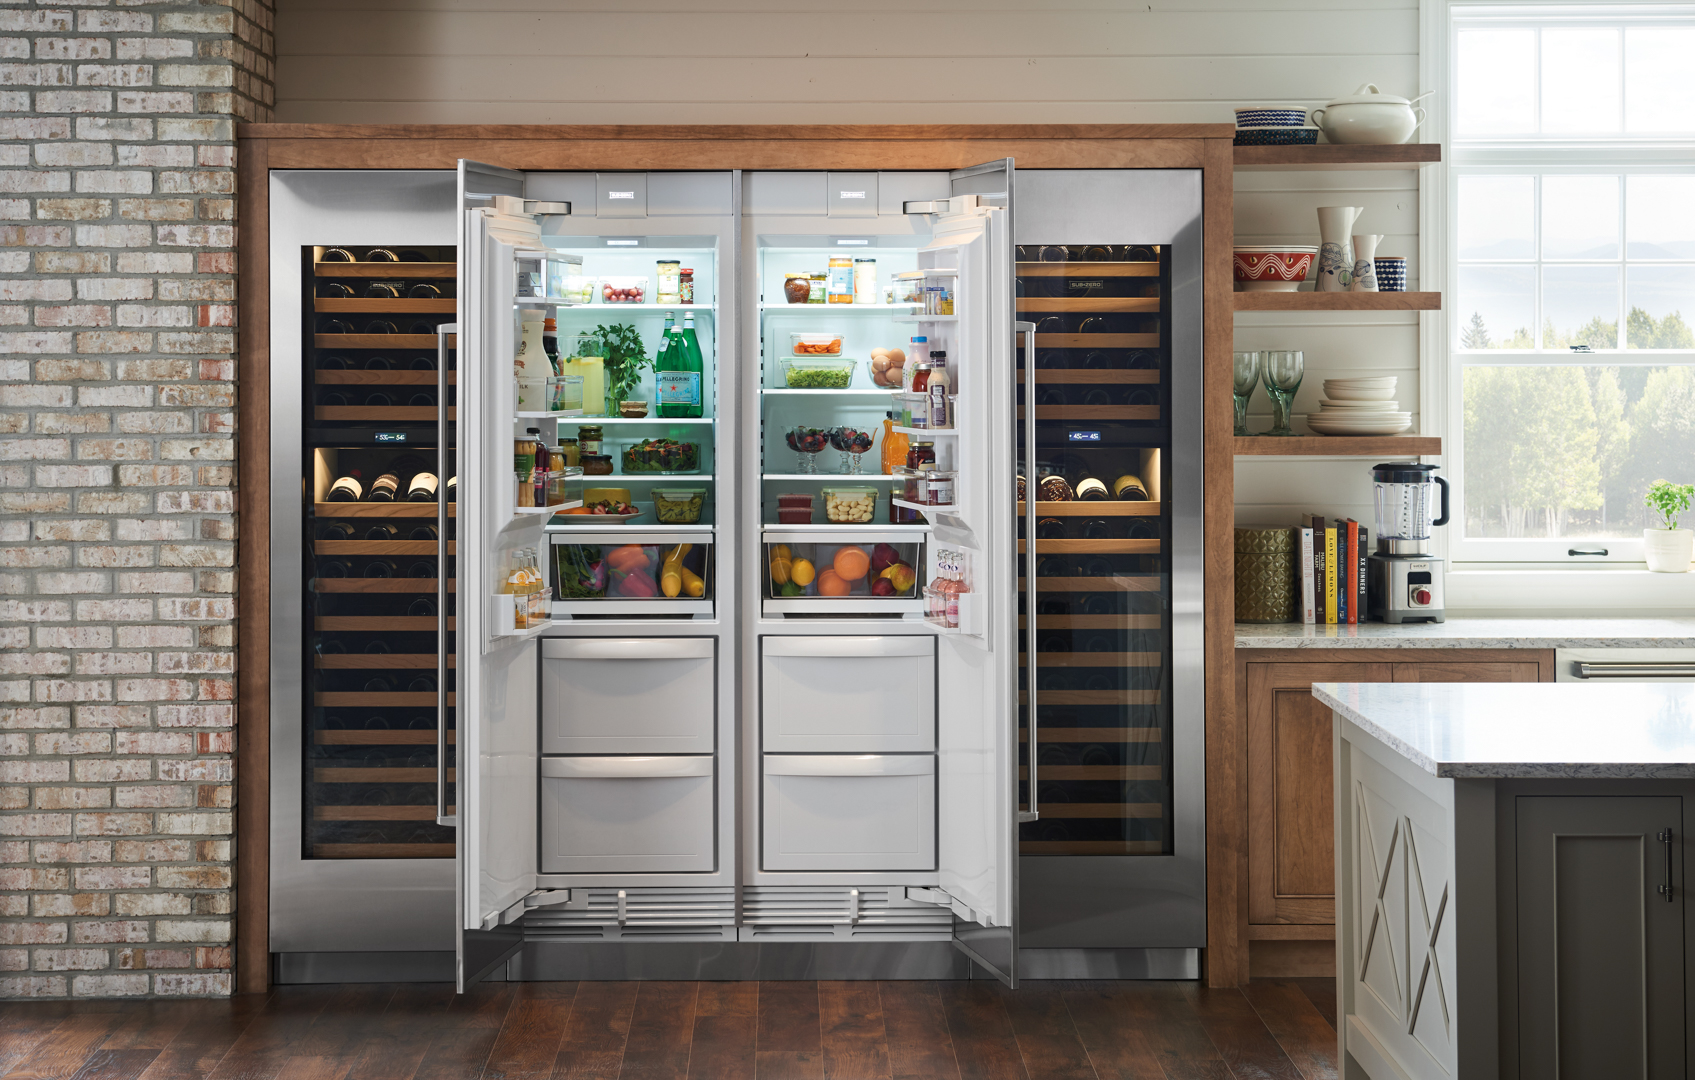 Kitchens Beyond Compare with Sub-Zero Wolf